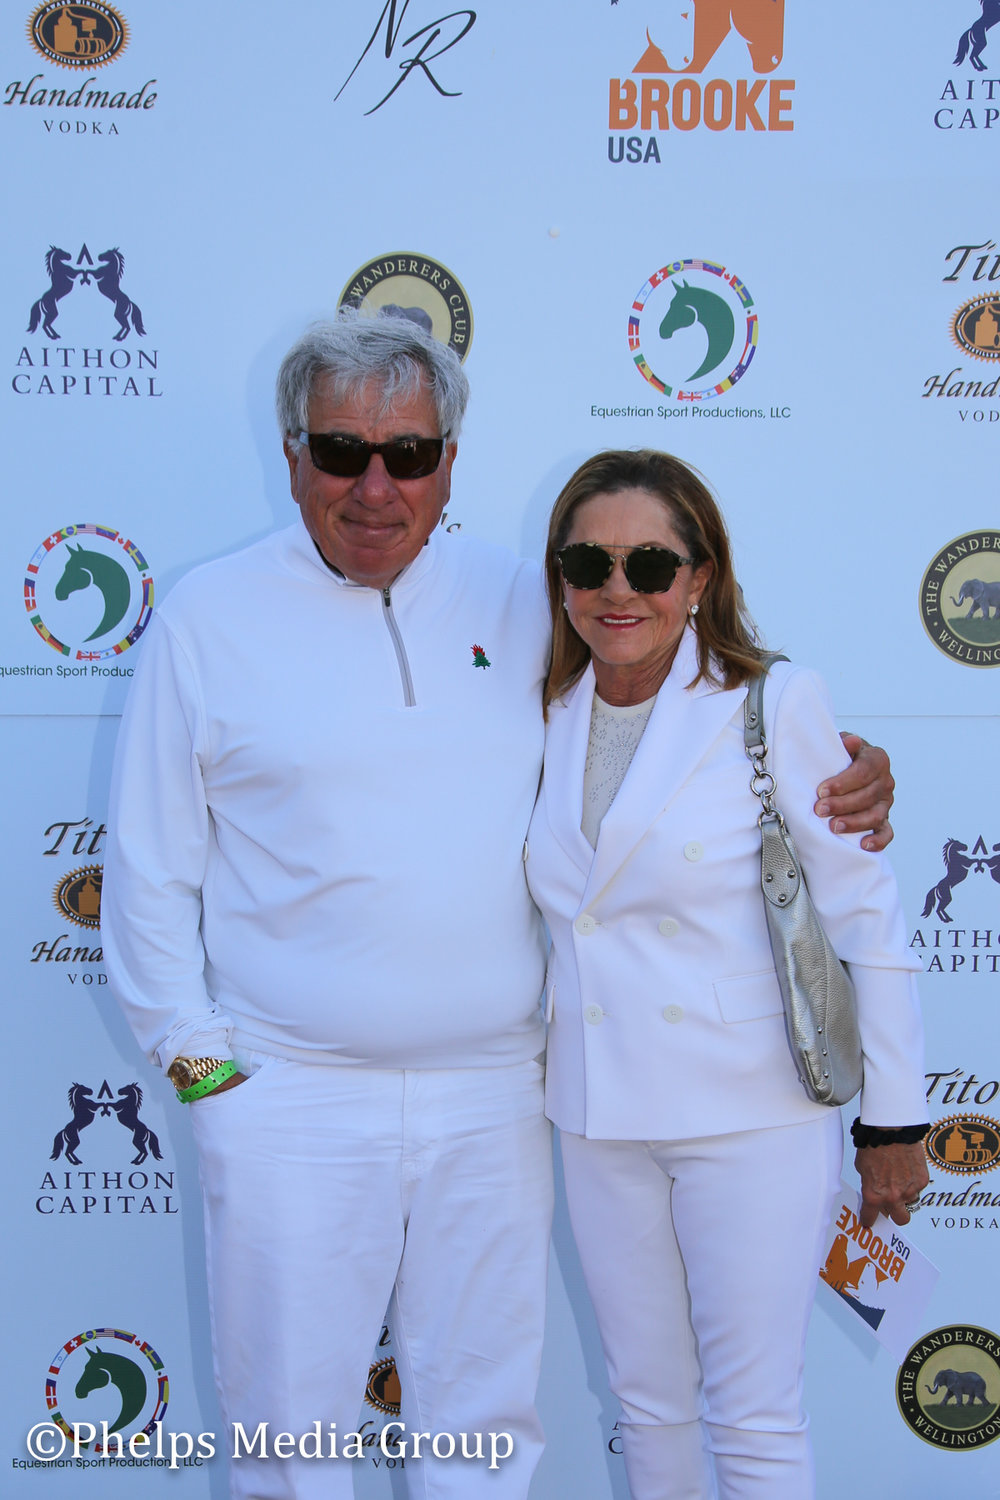 Mr and Mrs Fulchino; Nic Roldan's 2nd Annual Sunset Polo & White Party, FL, by Phelps Media.jpg